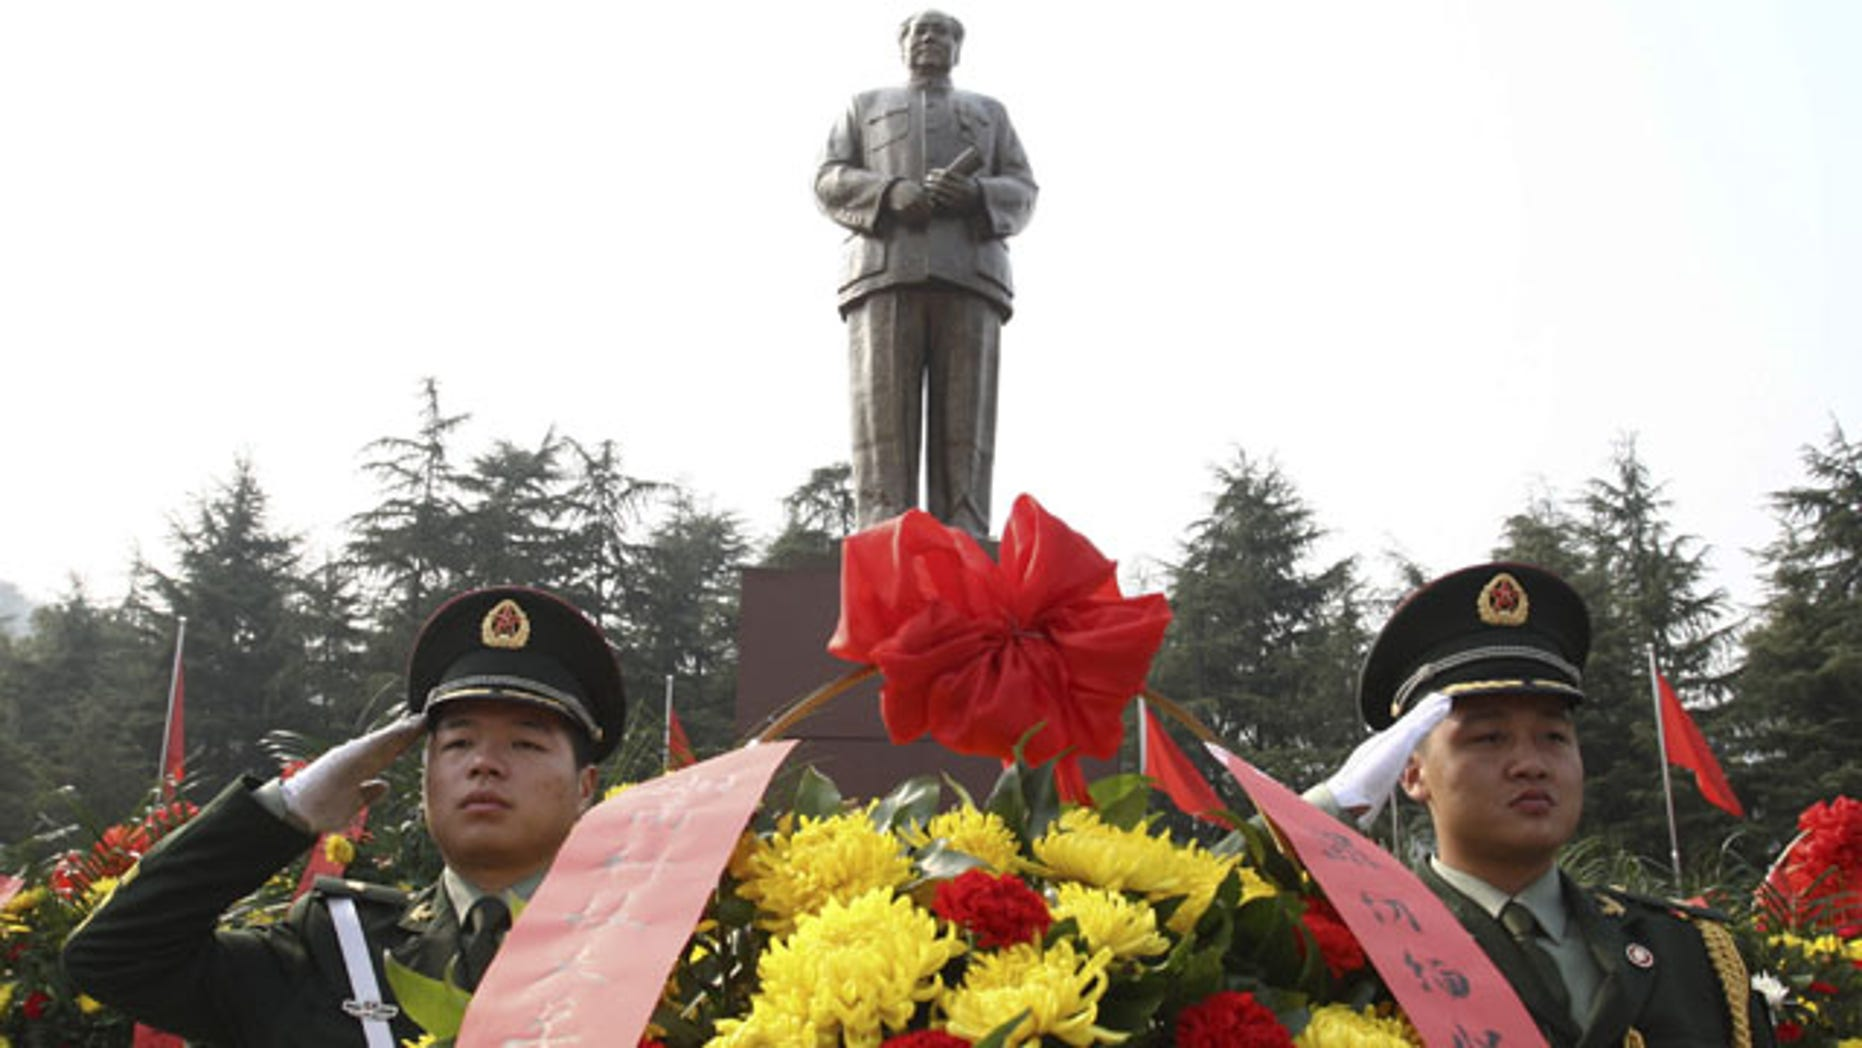 December 25, 2013: Security guards salute near wreaths in front of a statue of the late Communist leader Mao Zedong in Shaoshan, Mao's hometown, in southern China's Hunan province. (AP Photo)